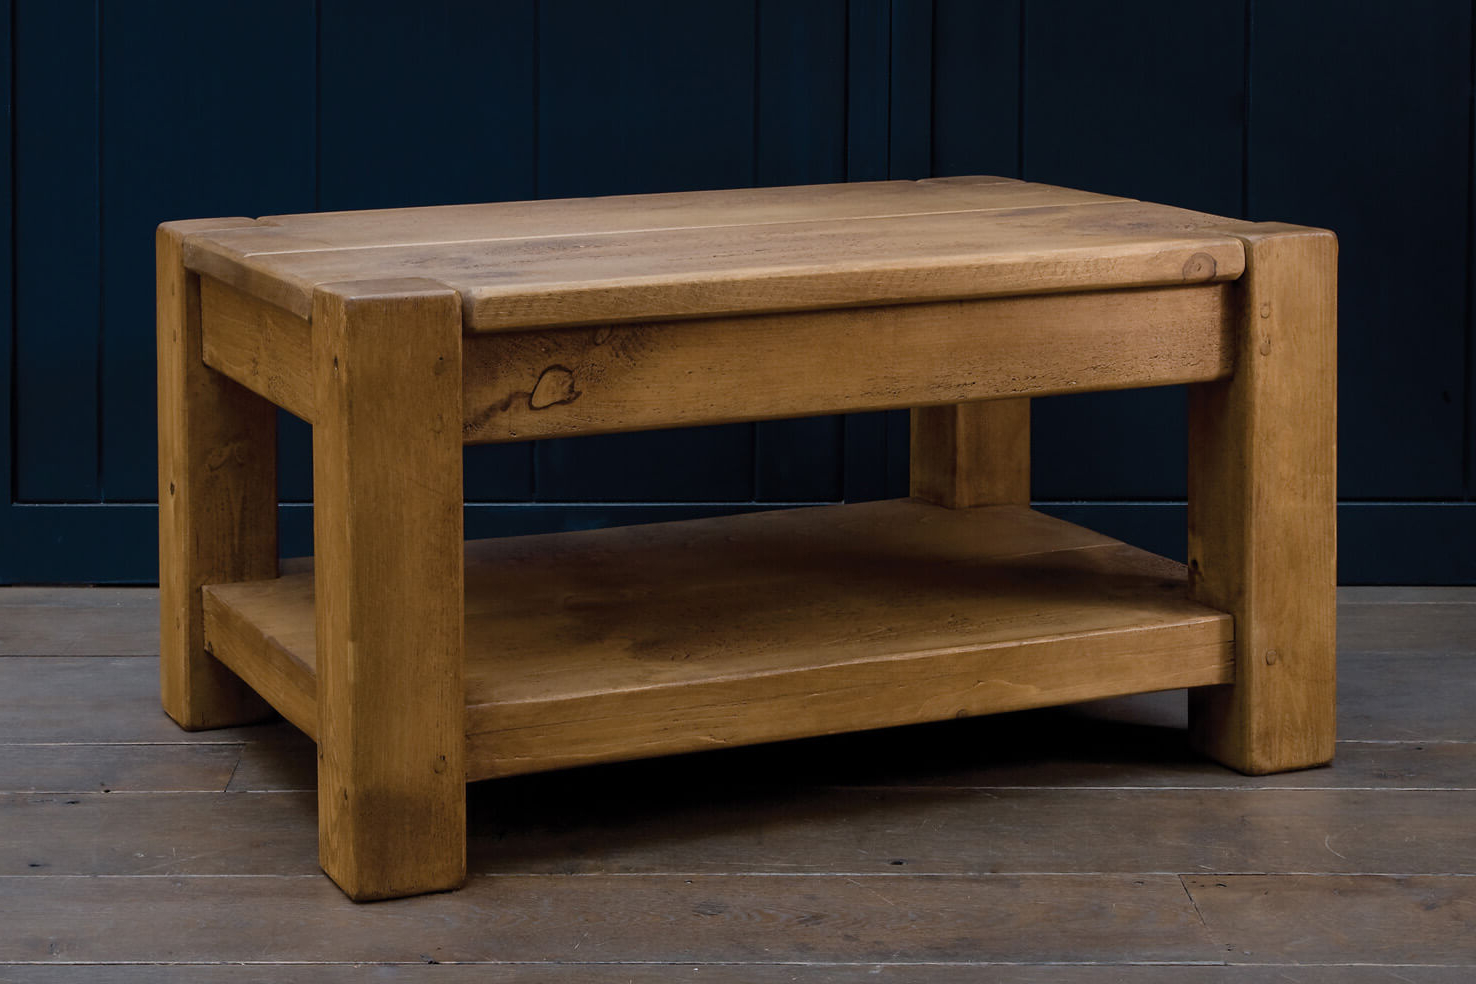 Favorite Rustic Wood Coffee Tables Handmade From Solid Oak Planks (Gallery 13 of 20)